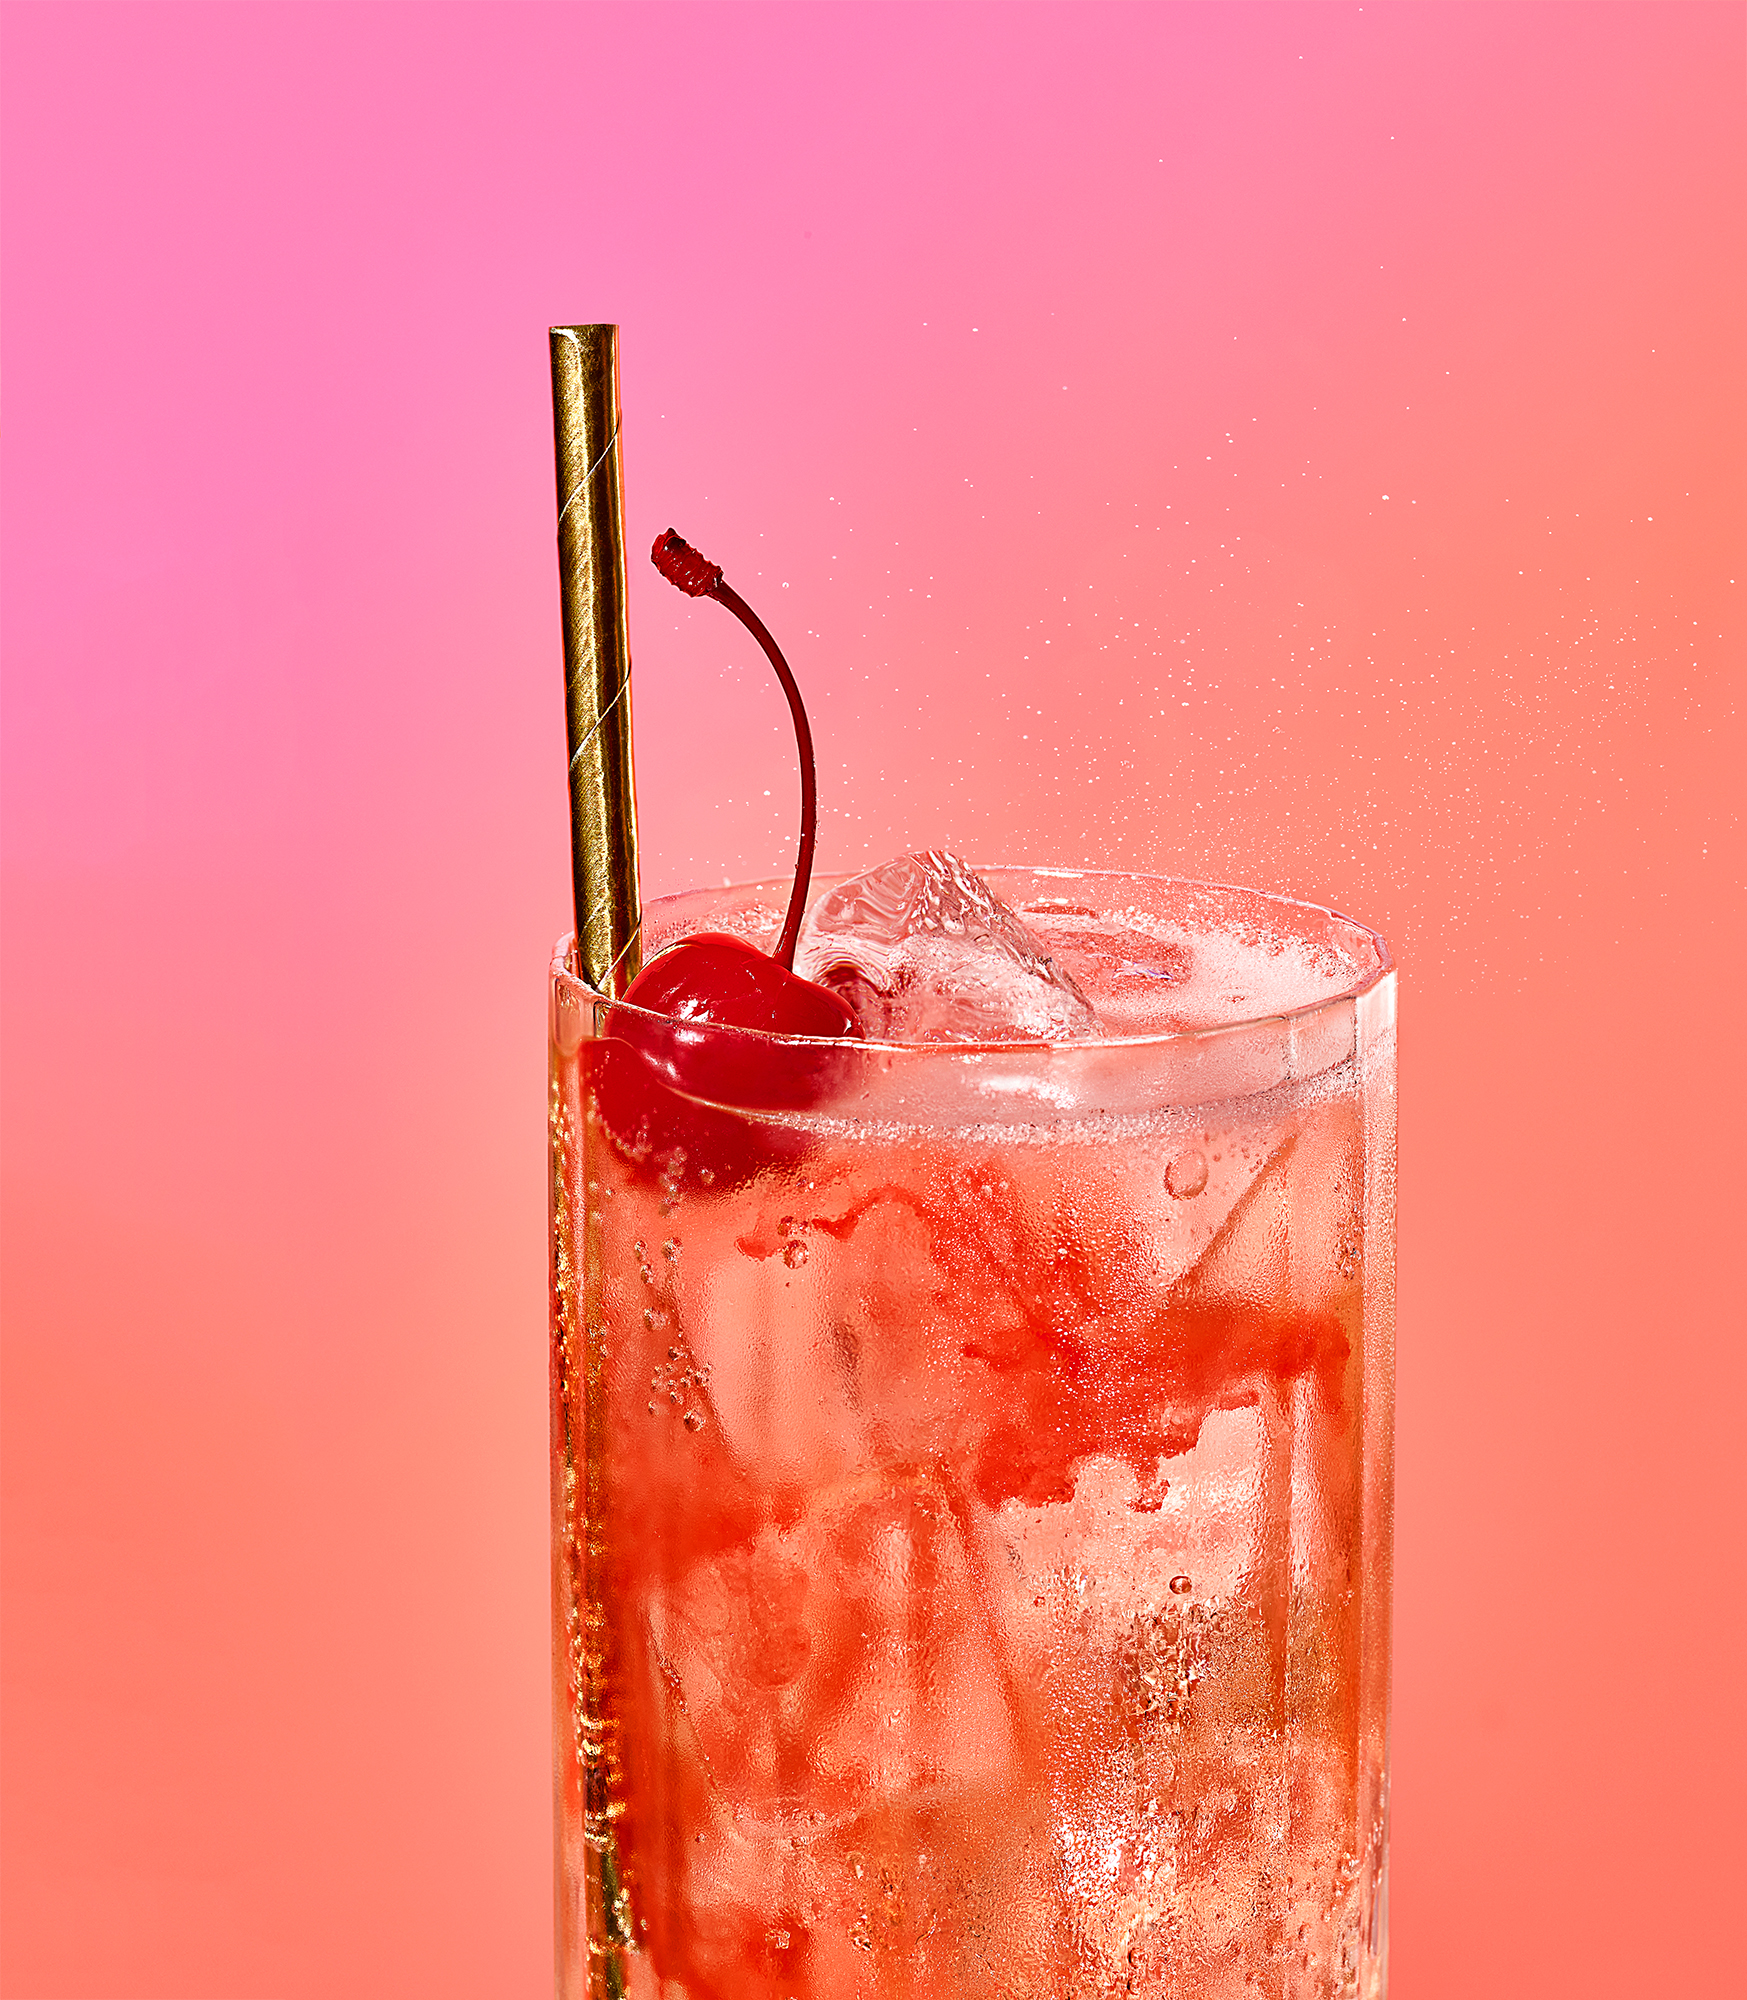 A soda in a glass with a cherry and straw on a bright pink background